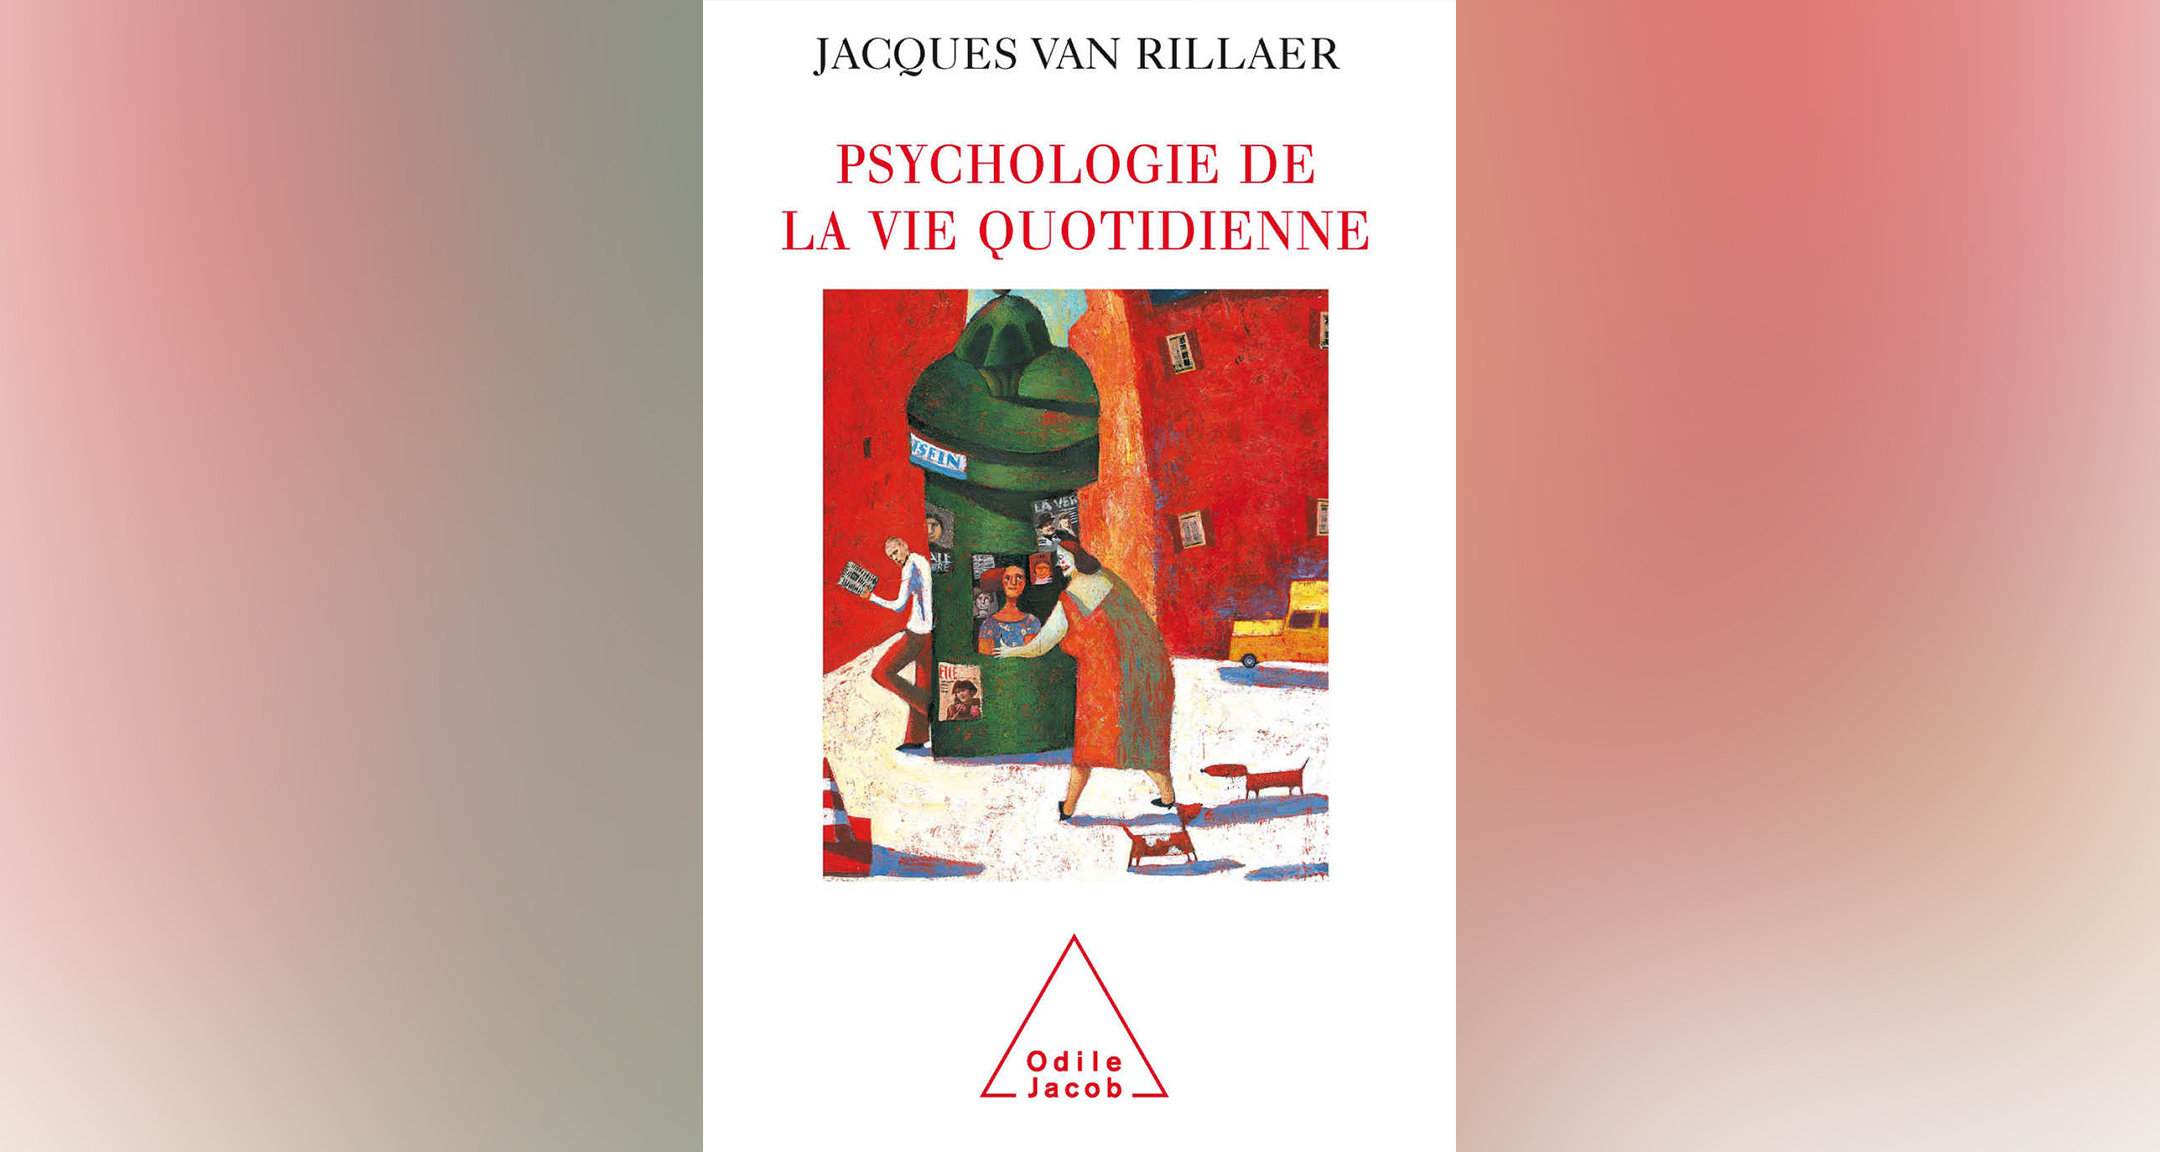 Psychologie de la vie quotidienne, Jacques van Rillaer